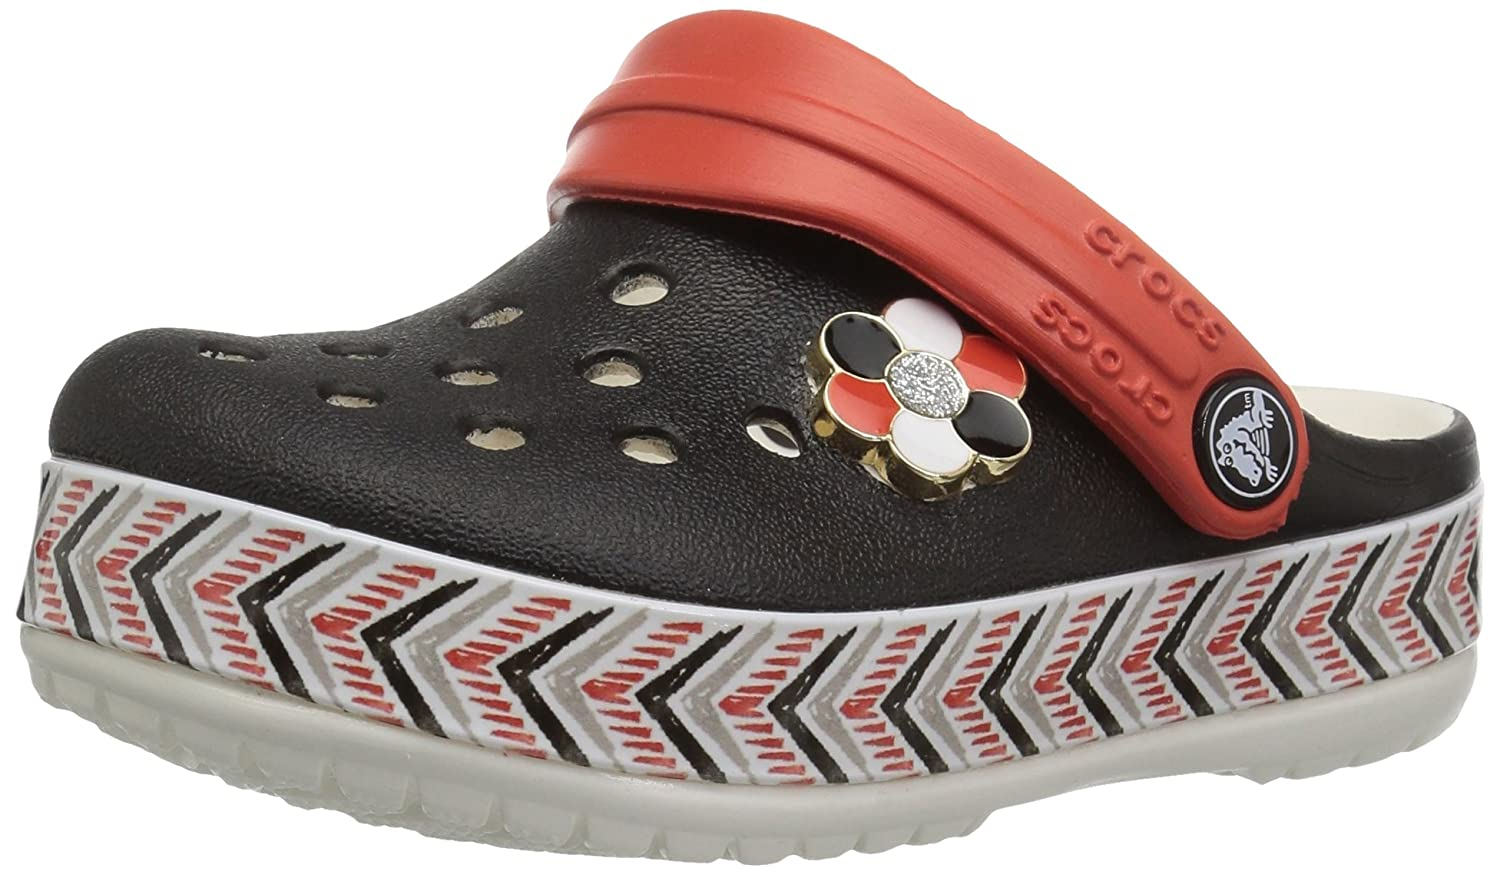 Crocs Kids' Drew Barrymore Crocband Chevron Clog 205244